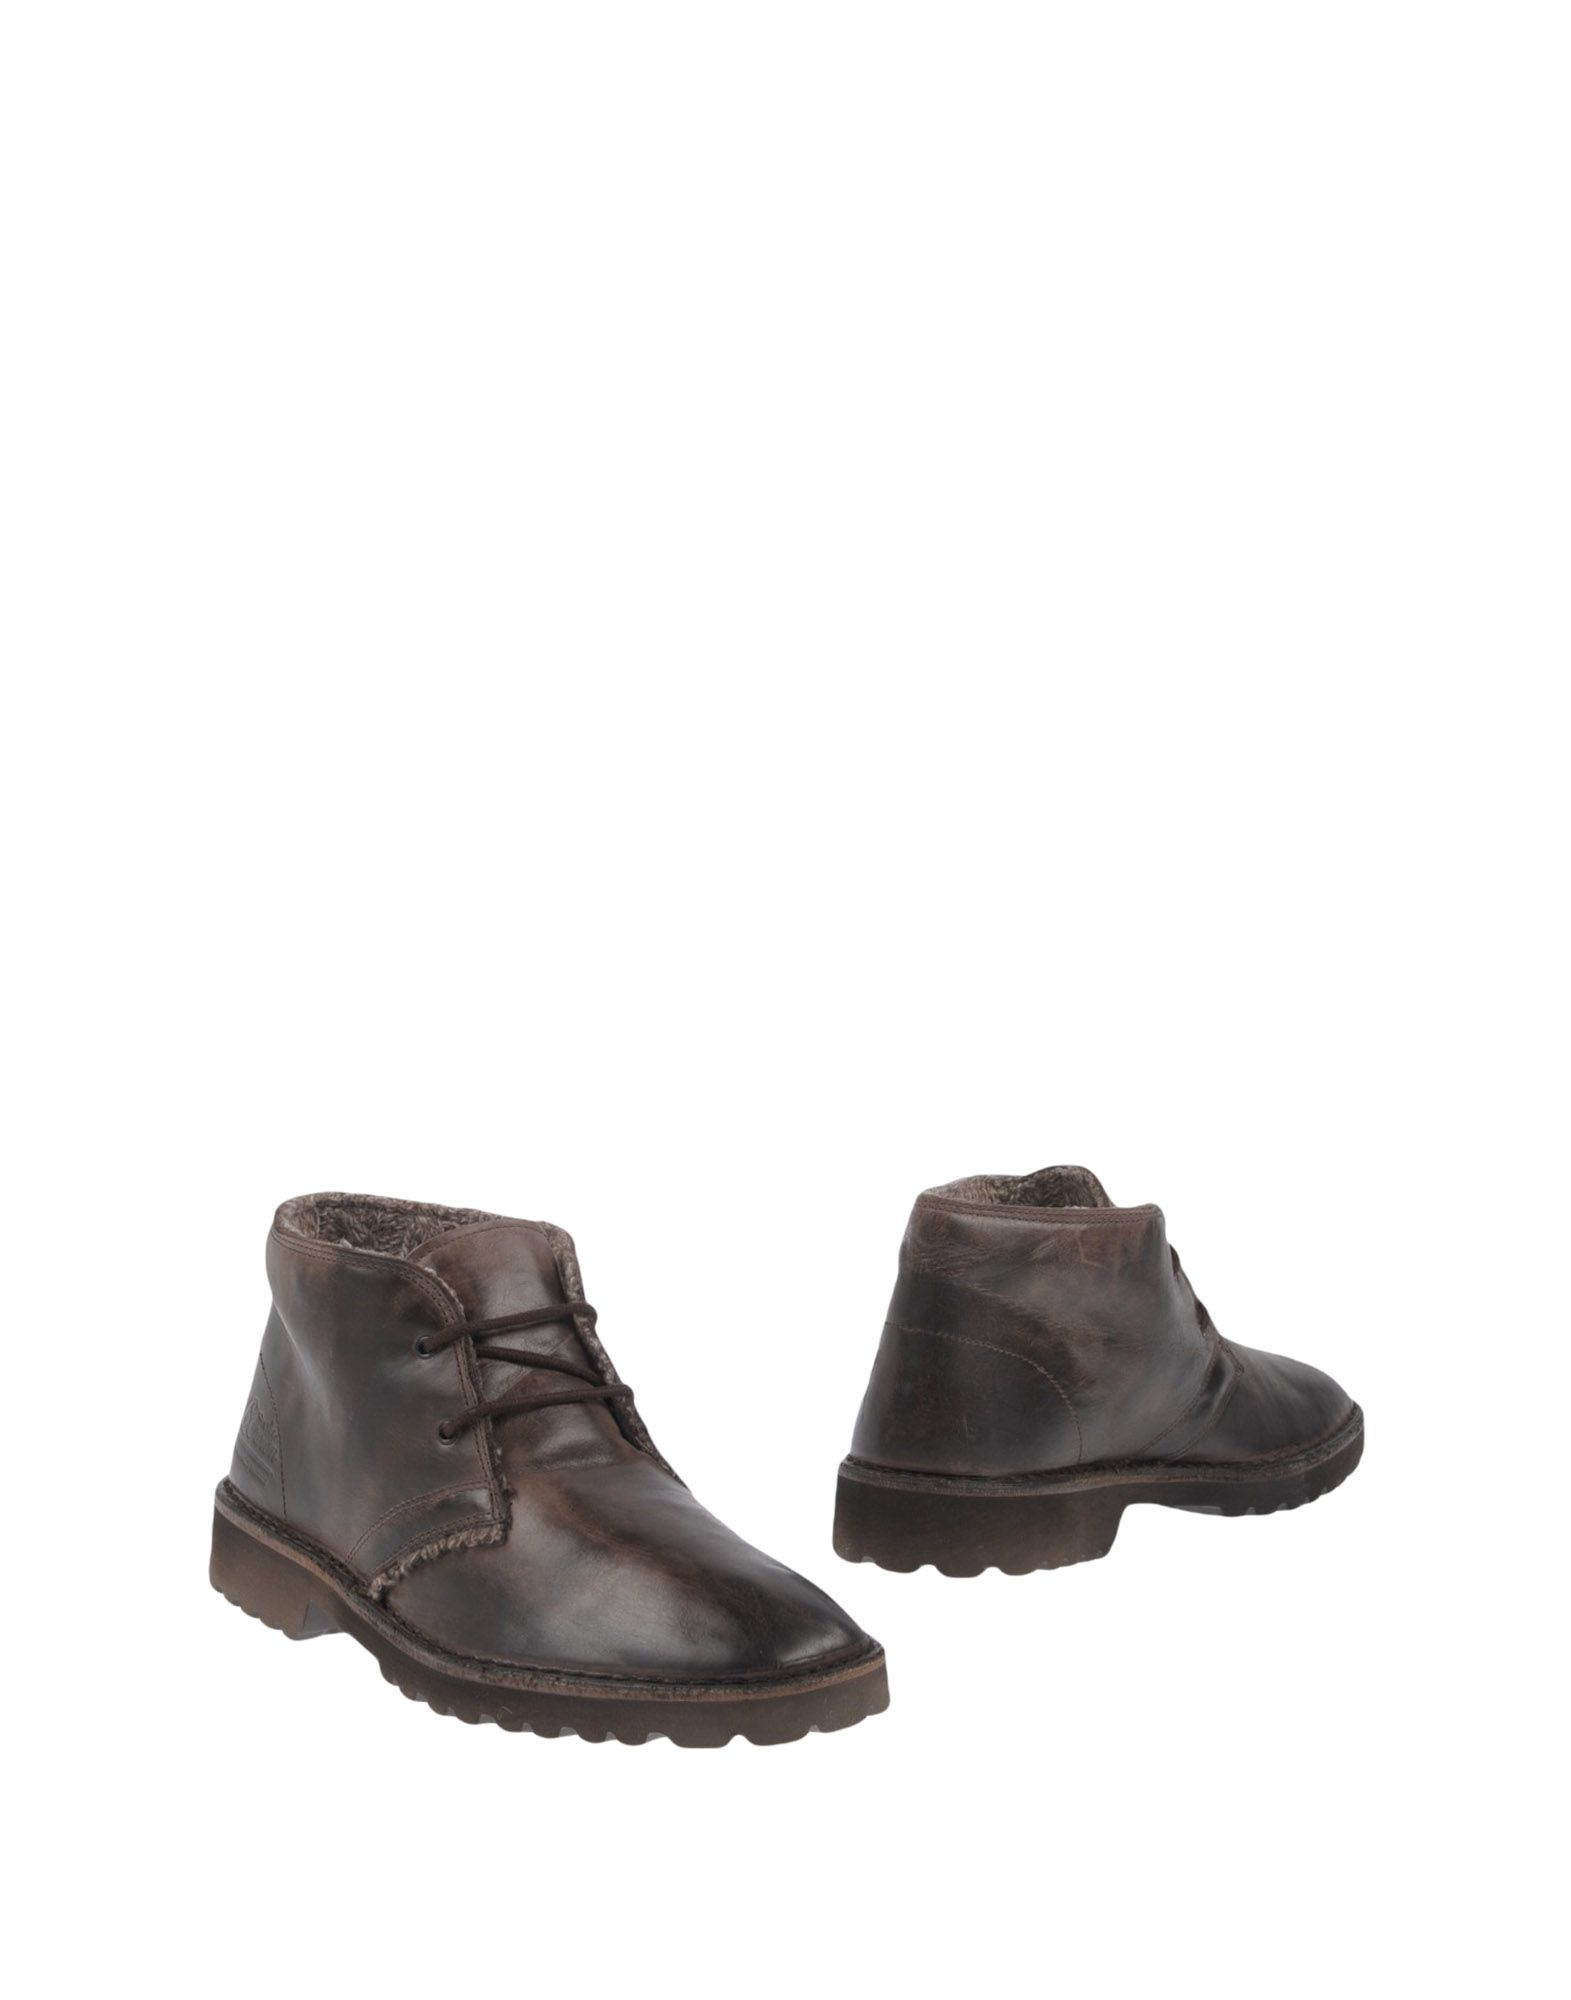 LE CROWN Boots in Dark Brown